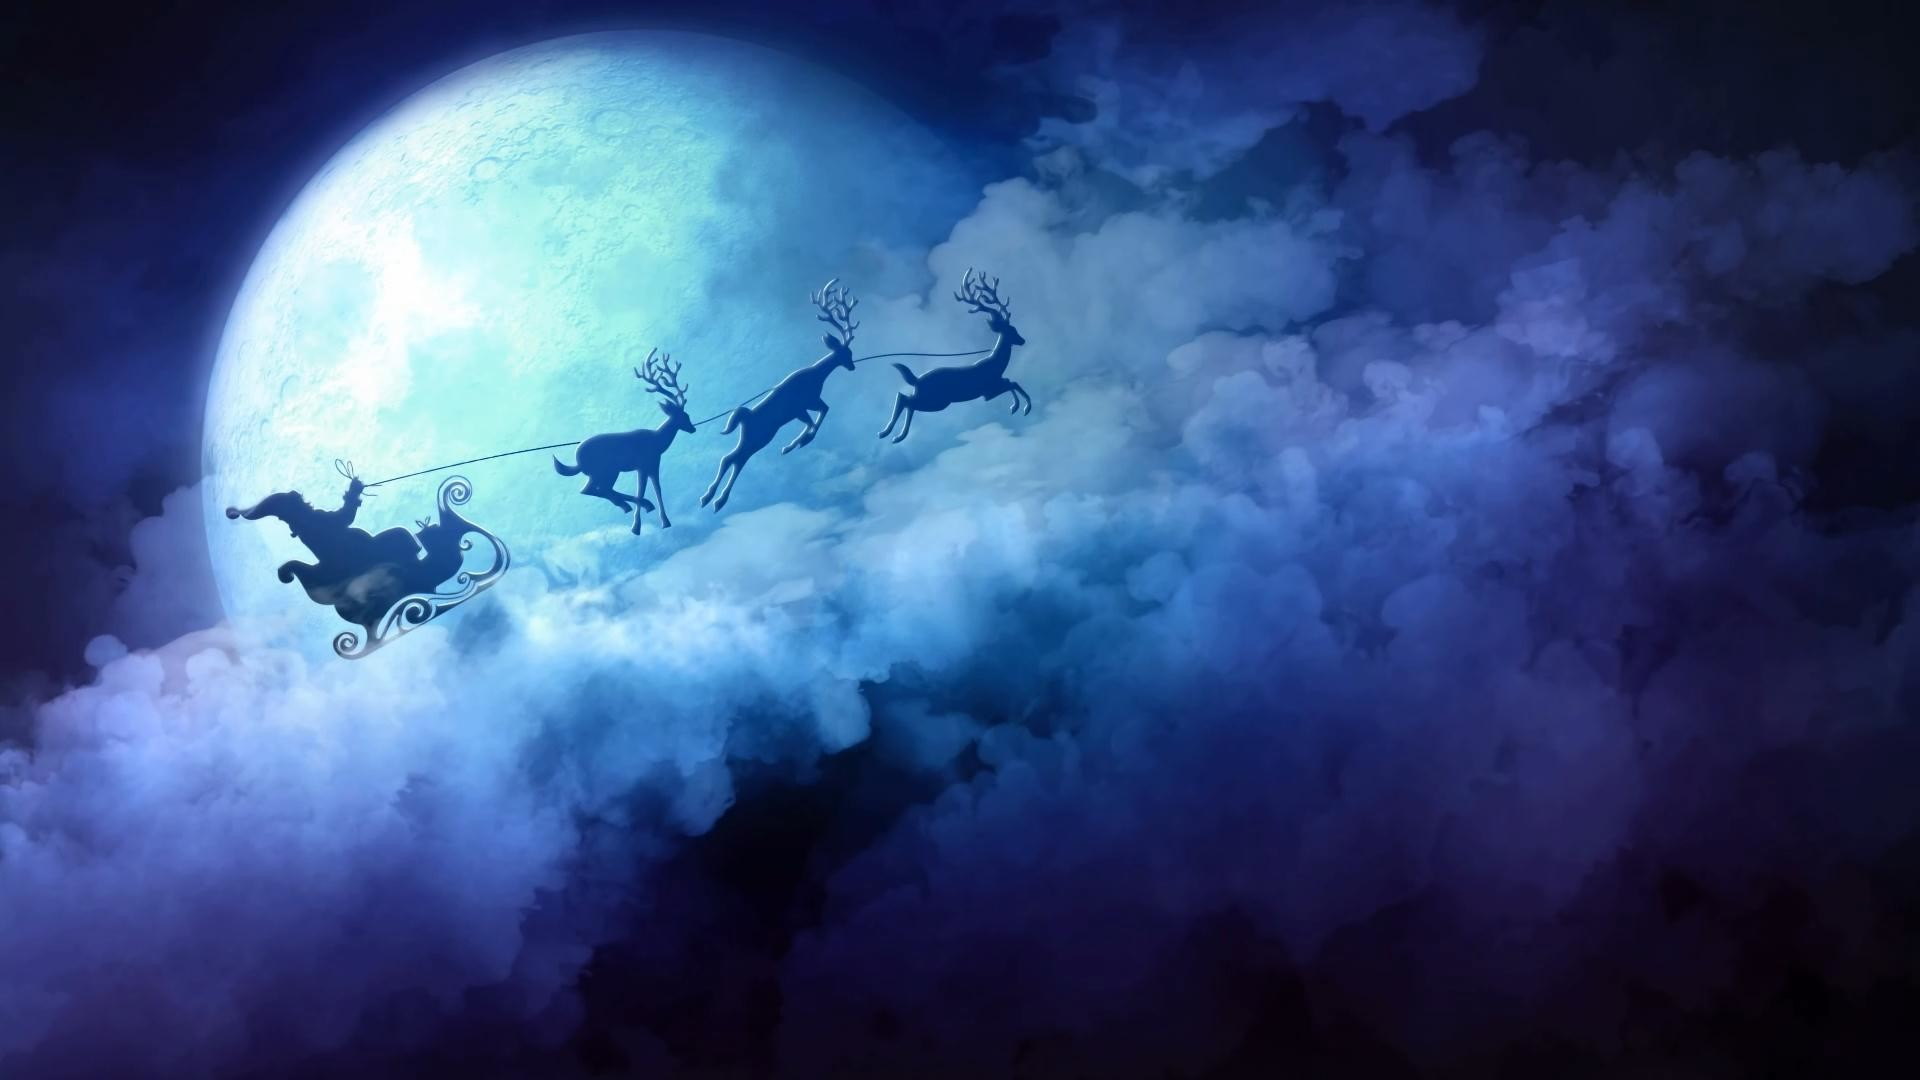 Wallpaper S Collection Christmas Wallpapers